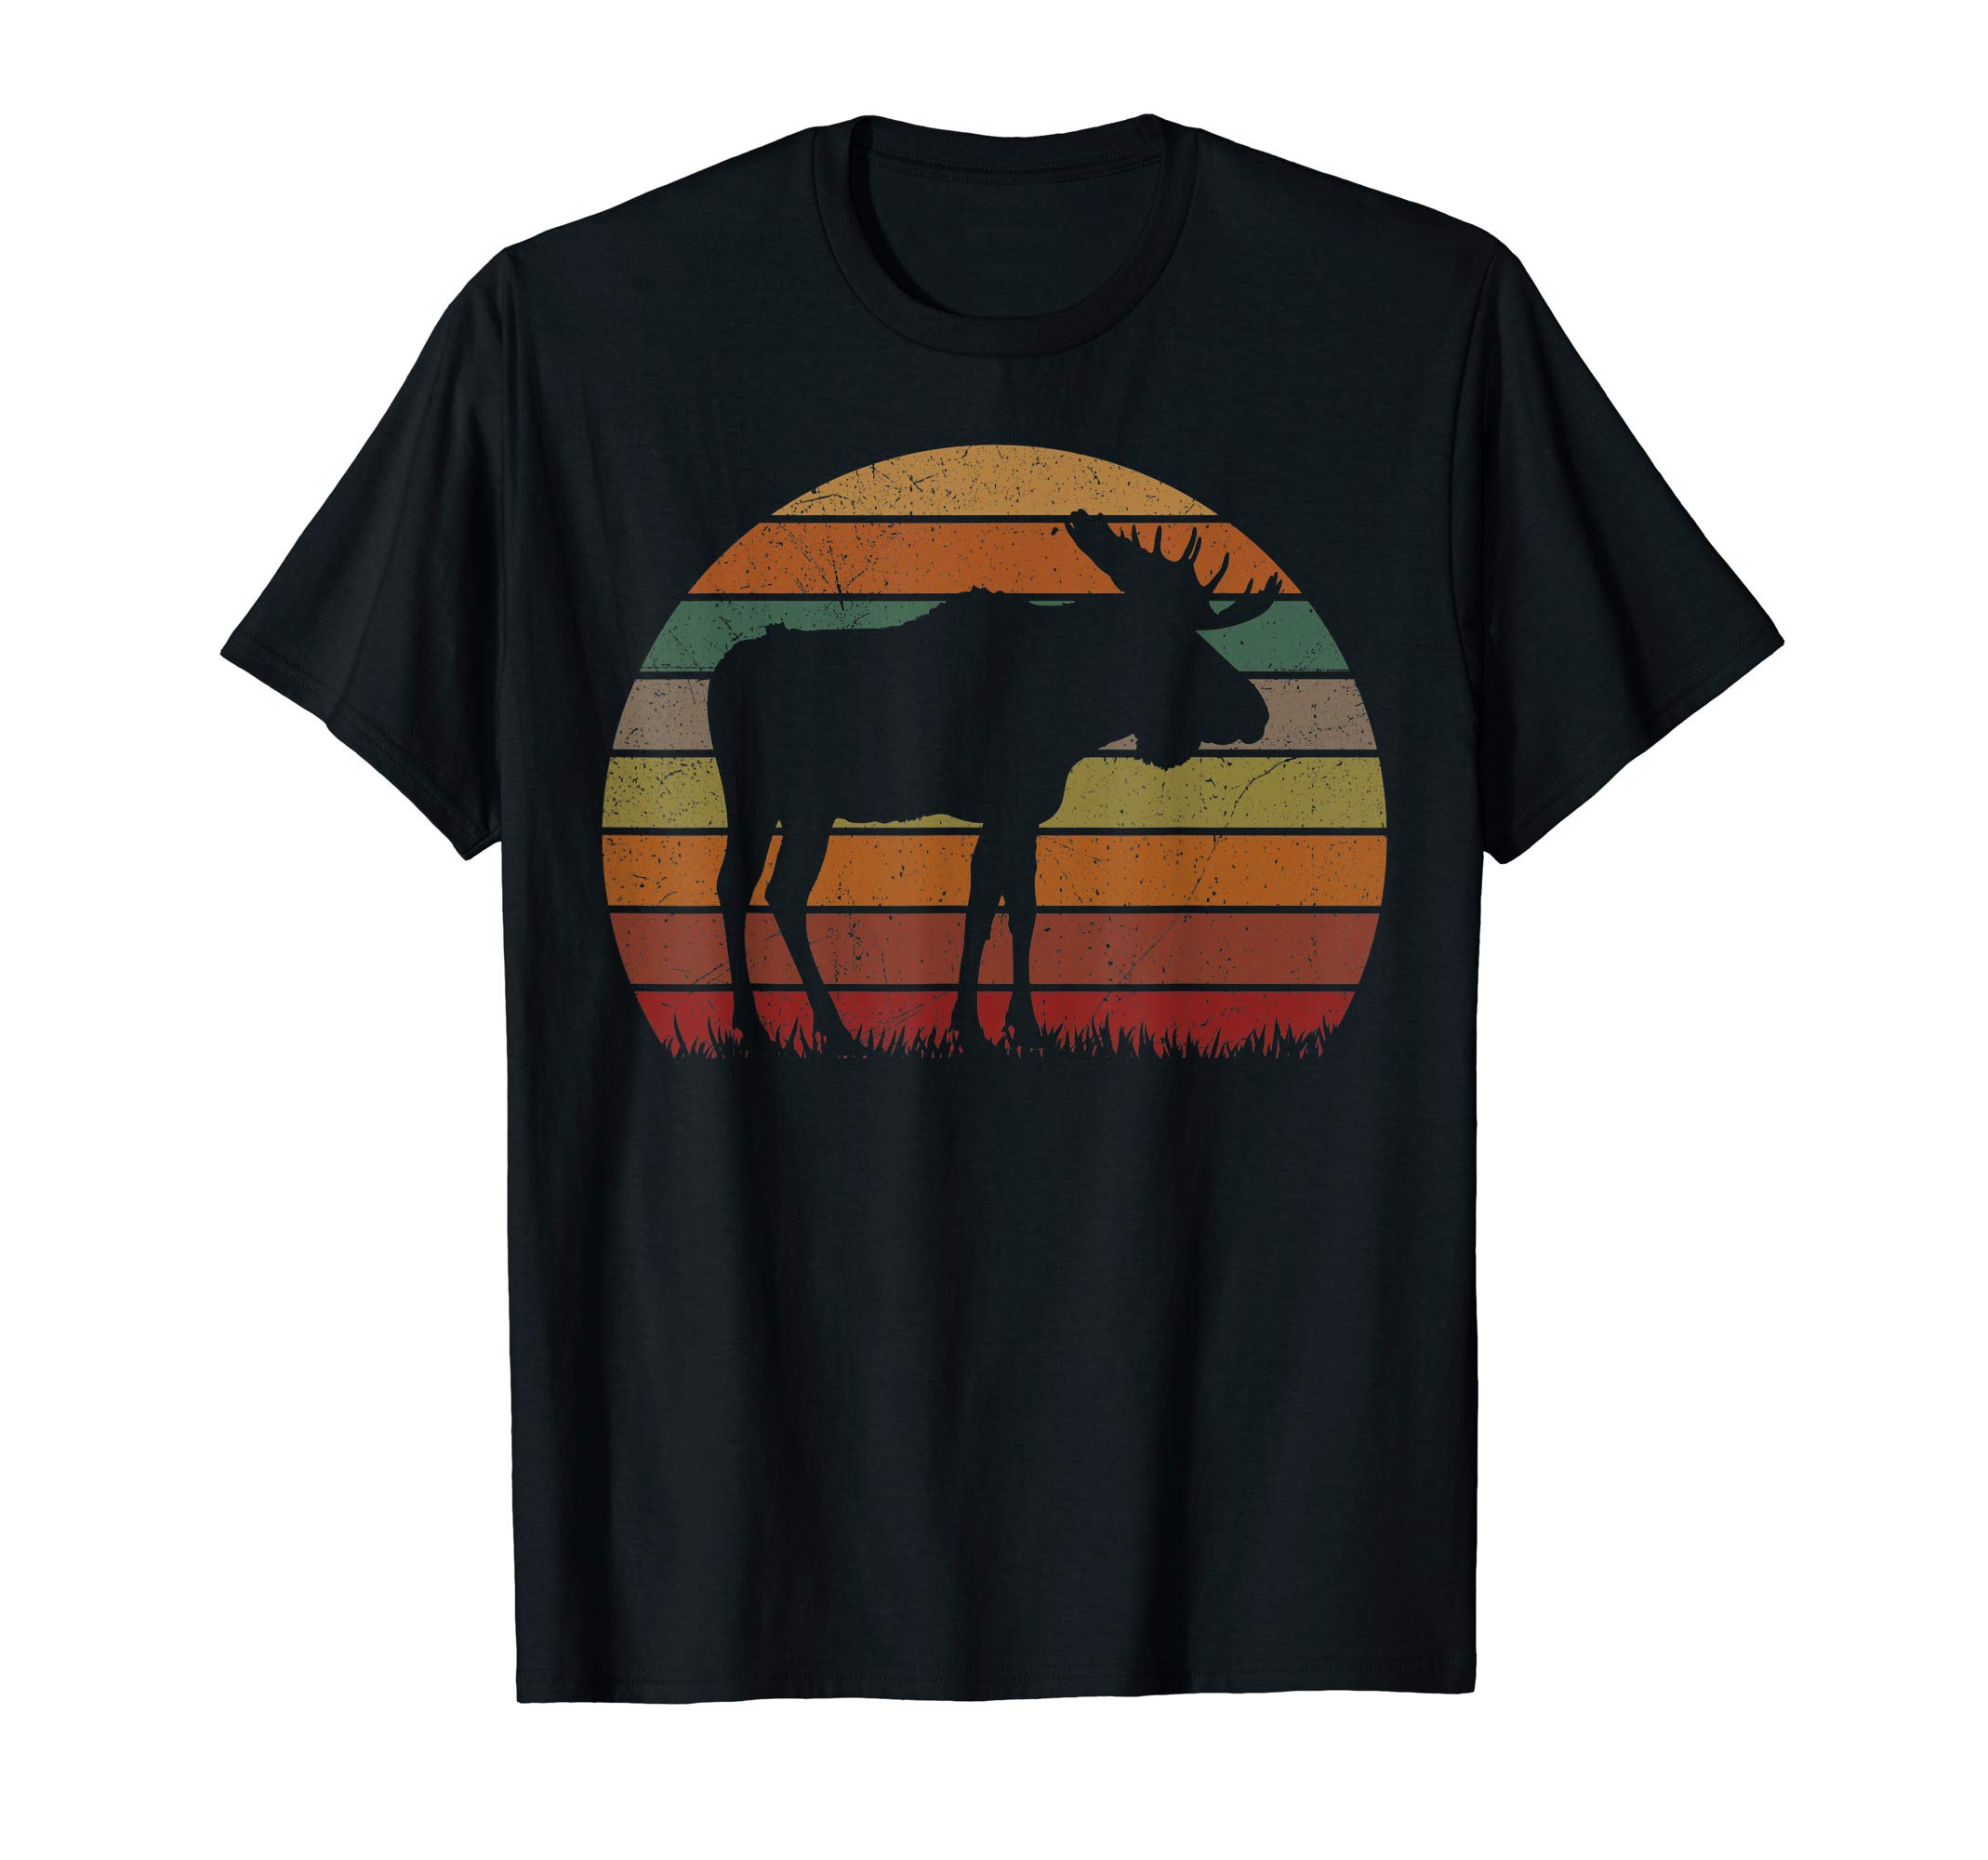 Funny Moose in Sunset Camping Lovers Gift Happy Camp T-Shirt by Camp Moose in Sunset Tee Love Camper Gifts